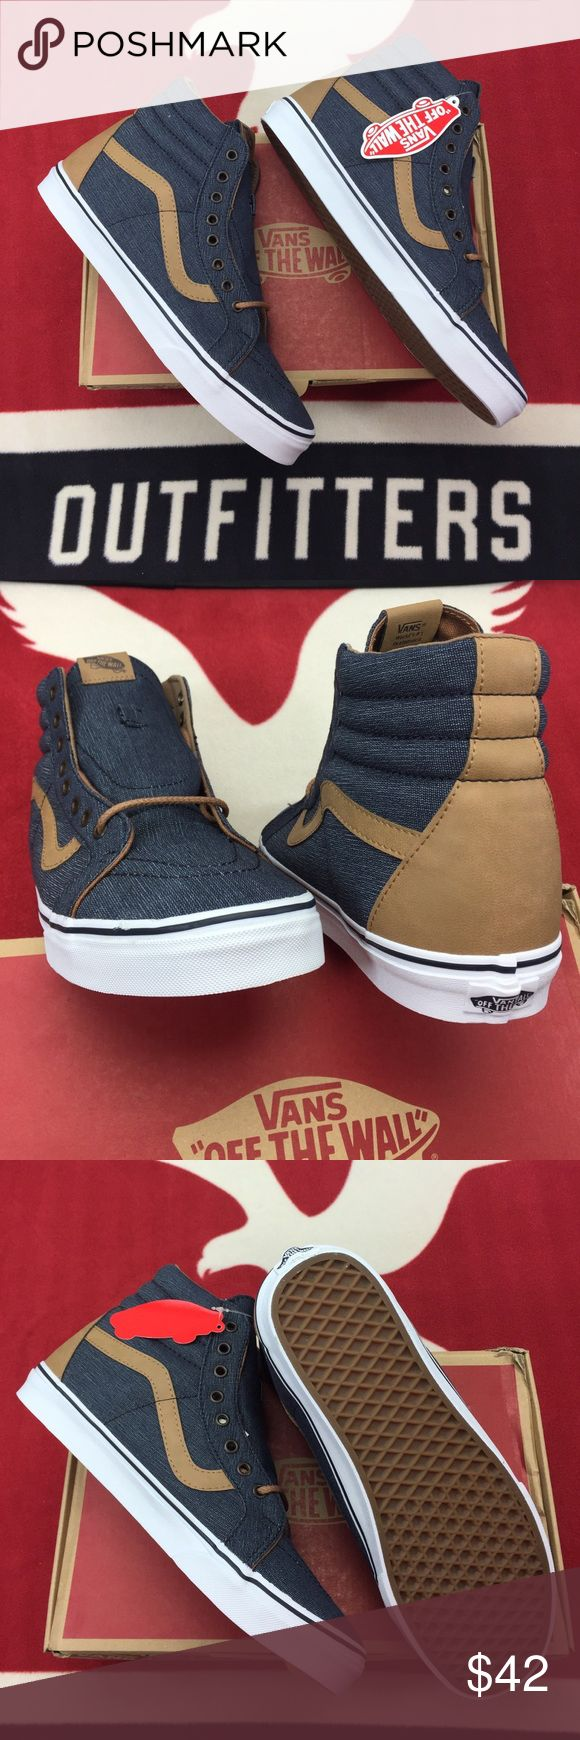 Vans Sk8-Hi Reissue Navy Denims' Vans Sk8-Hi, the legendary lace-up high top, features sturdy uppers, re-enforced toecaps to withstand repeated wear, padded collars for support and flexibility, and signature rubber waffle outsoles. Vans Shoes Sneakers